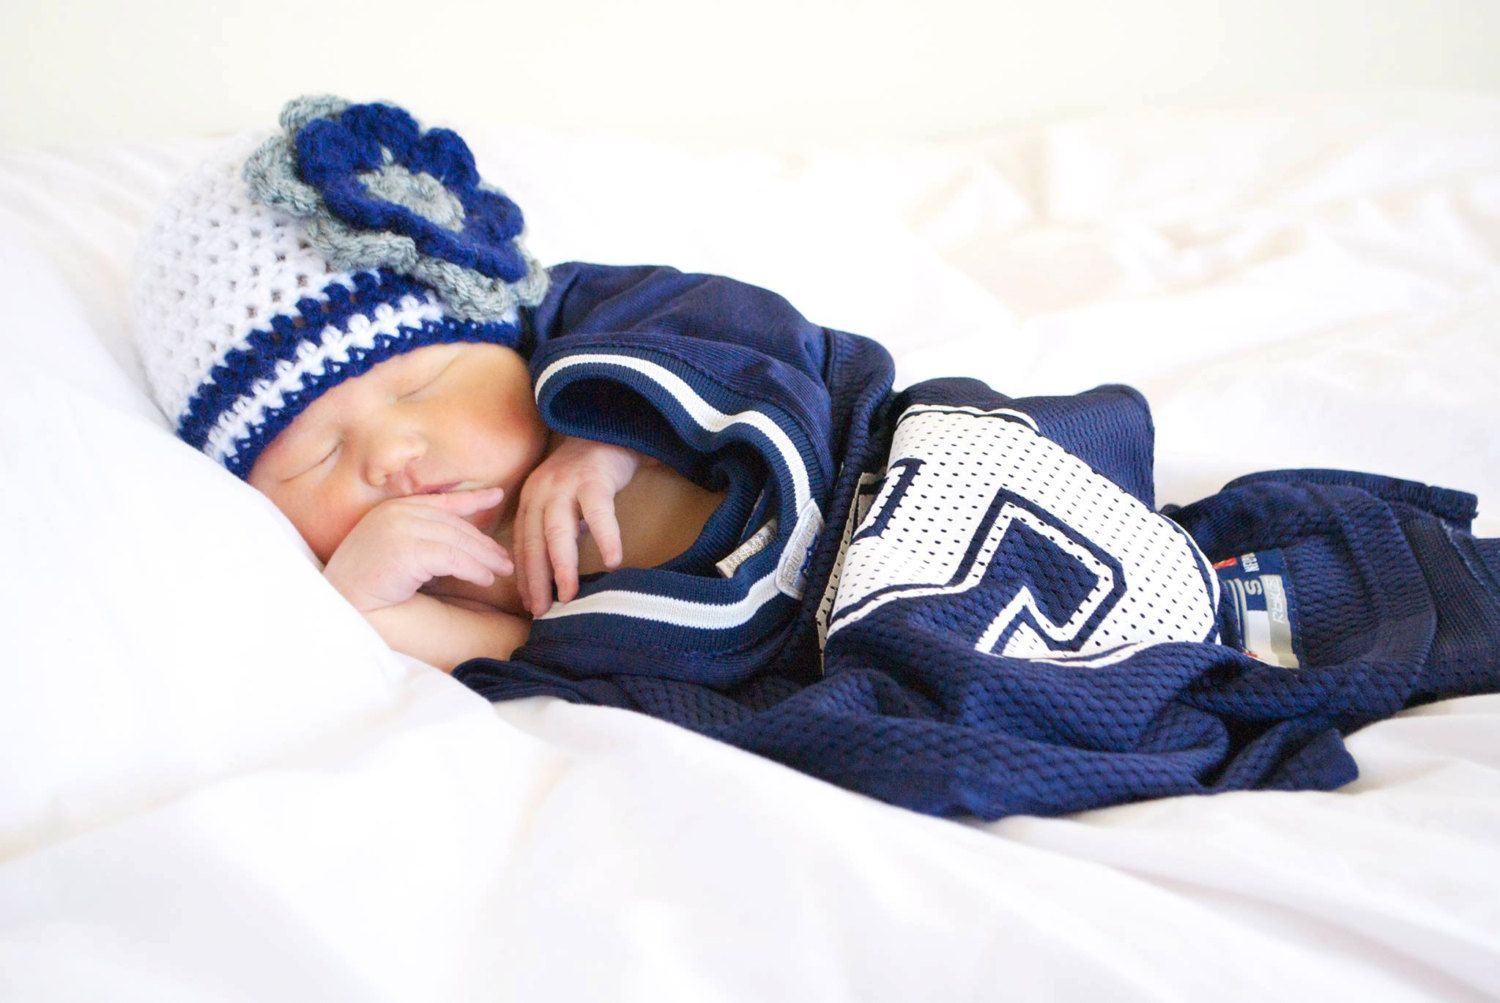 b6cabf851 dallas cowboys baby - Google Search | Baby Stuff!❤ | Dallas cowboys ...